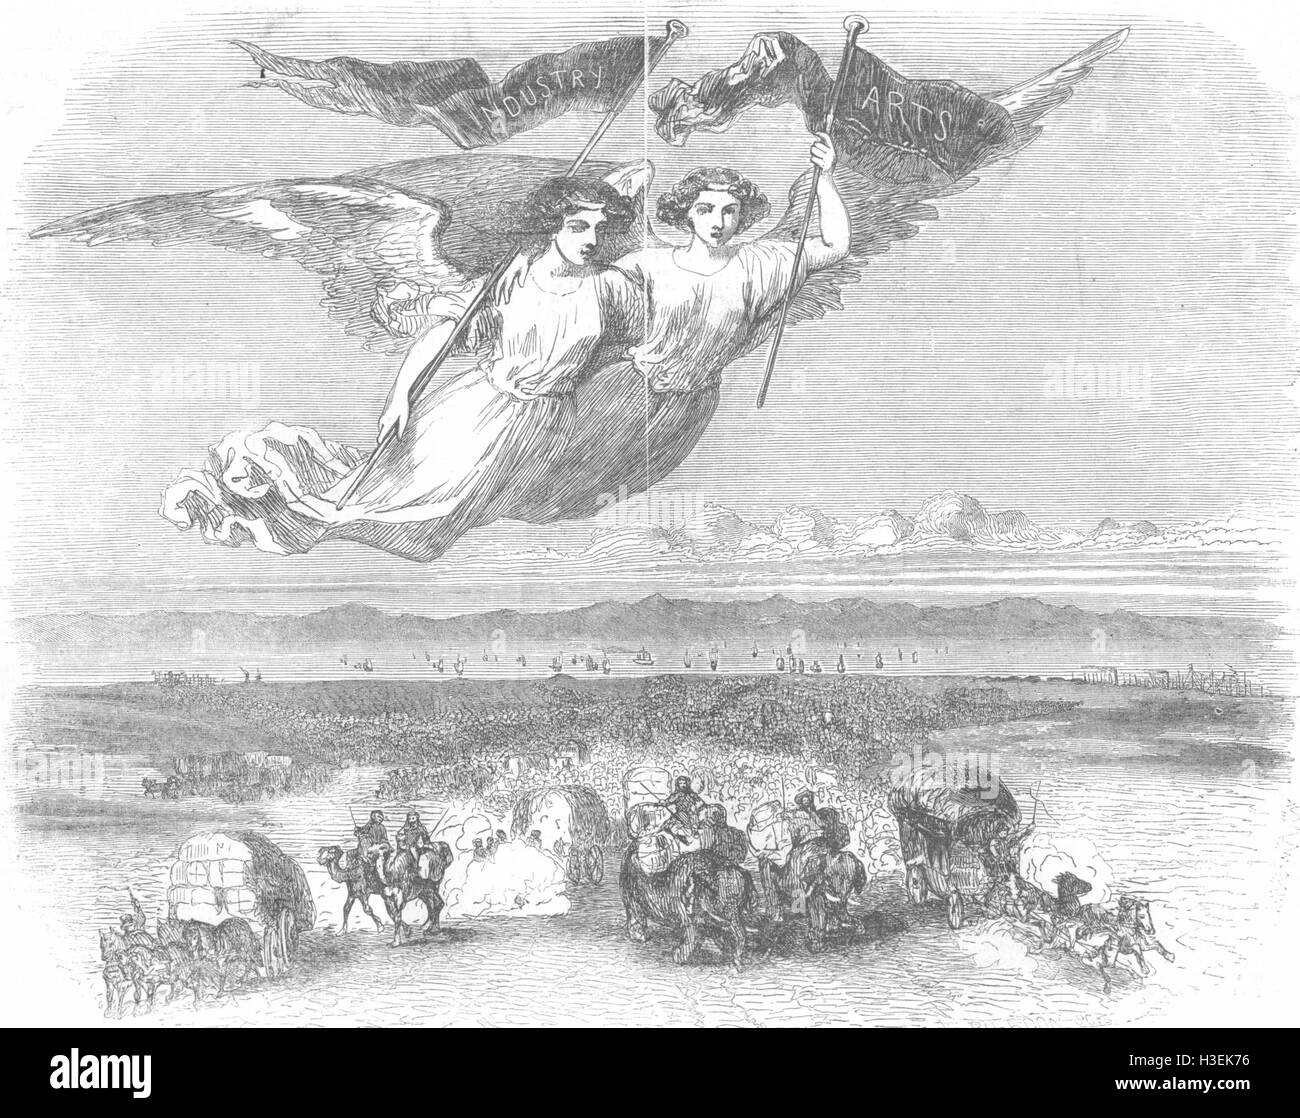 SOCIETY The Gathering of the Nations-Allegorical design by Johannot 1851. The Illustrated London News - Stock Image